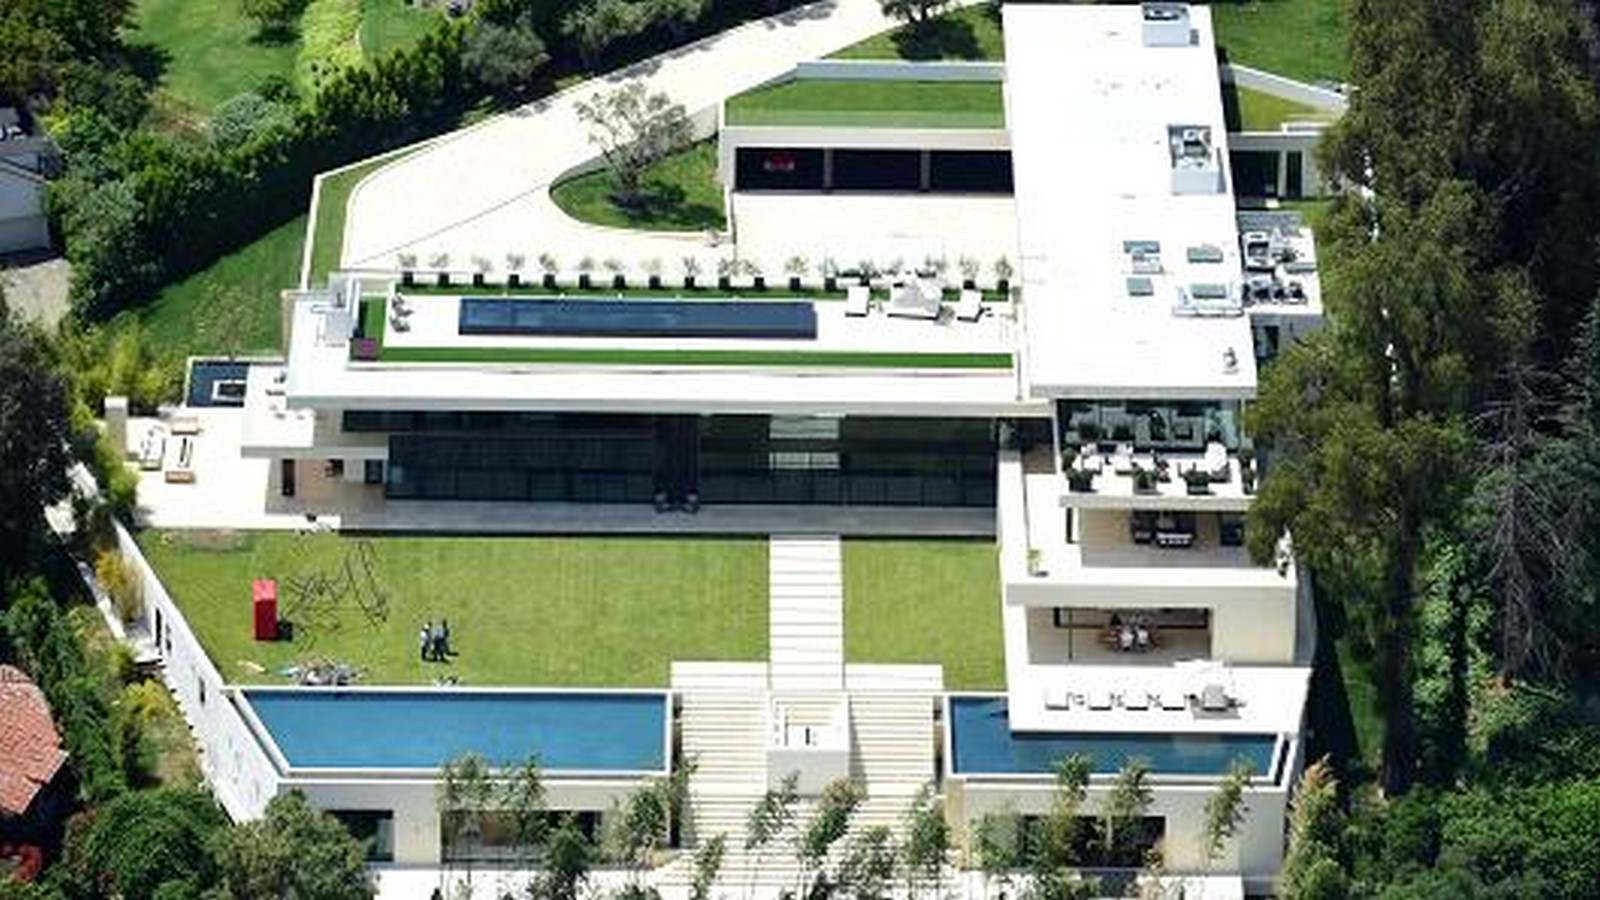 Beyonce and Jay-Z's Tiered Residence - Sheet1